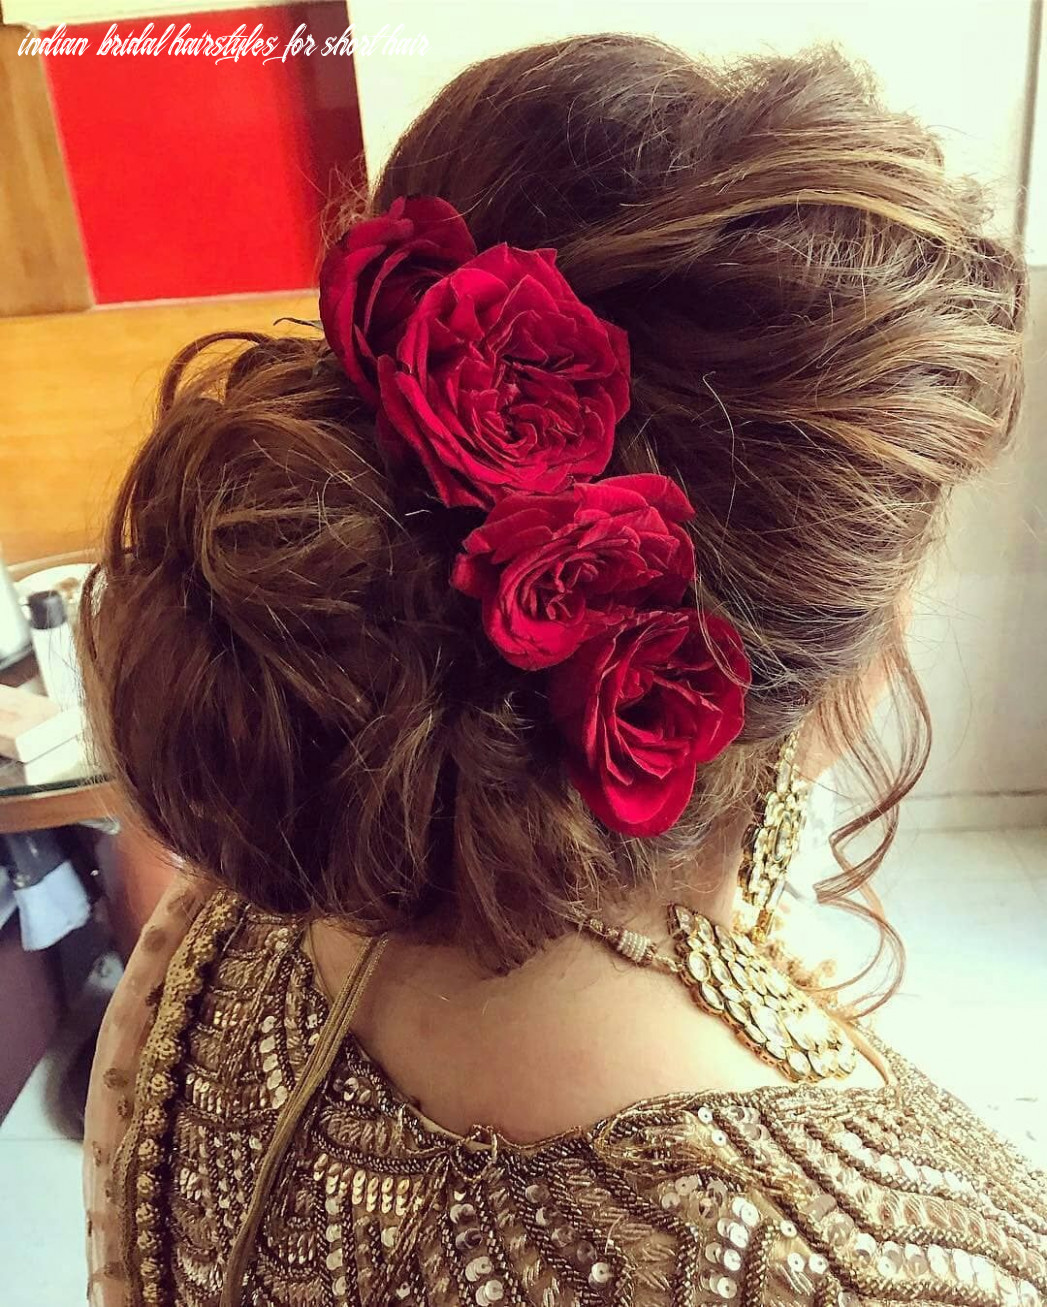 Unique bridal hairstyle ideas for short hair that trending this